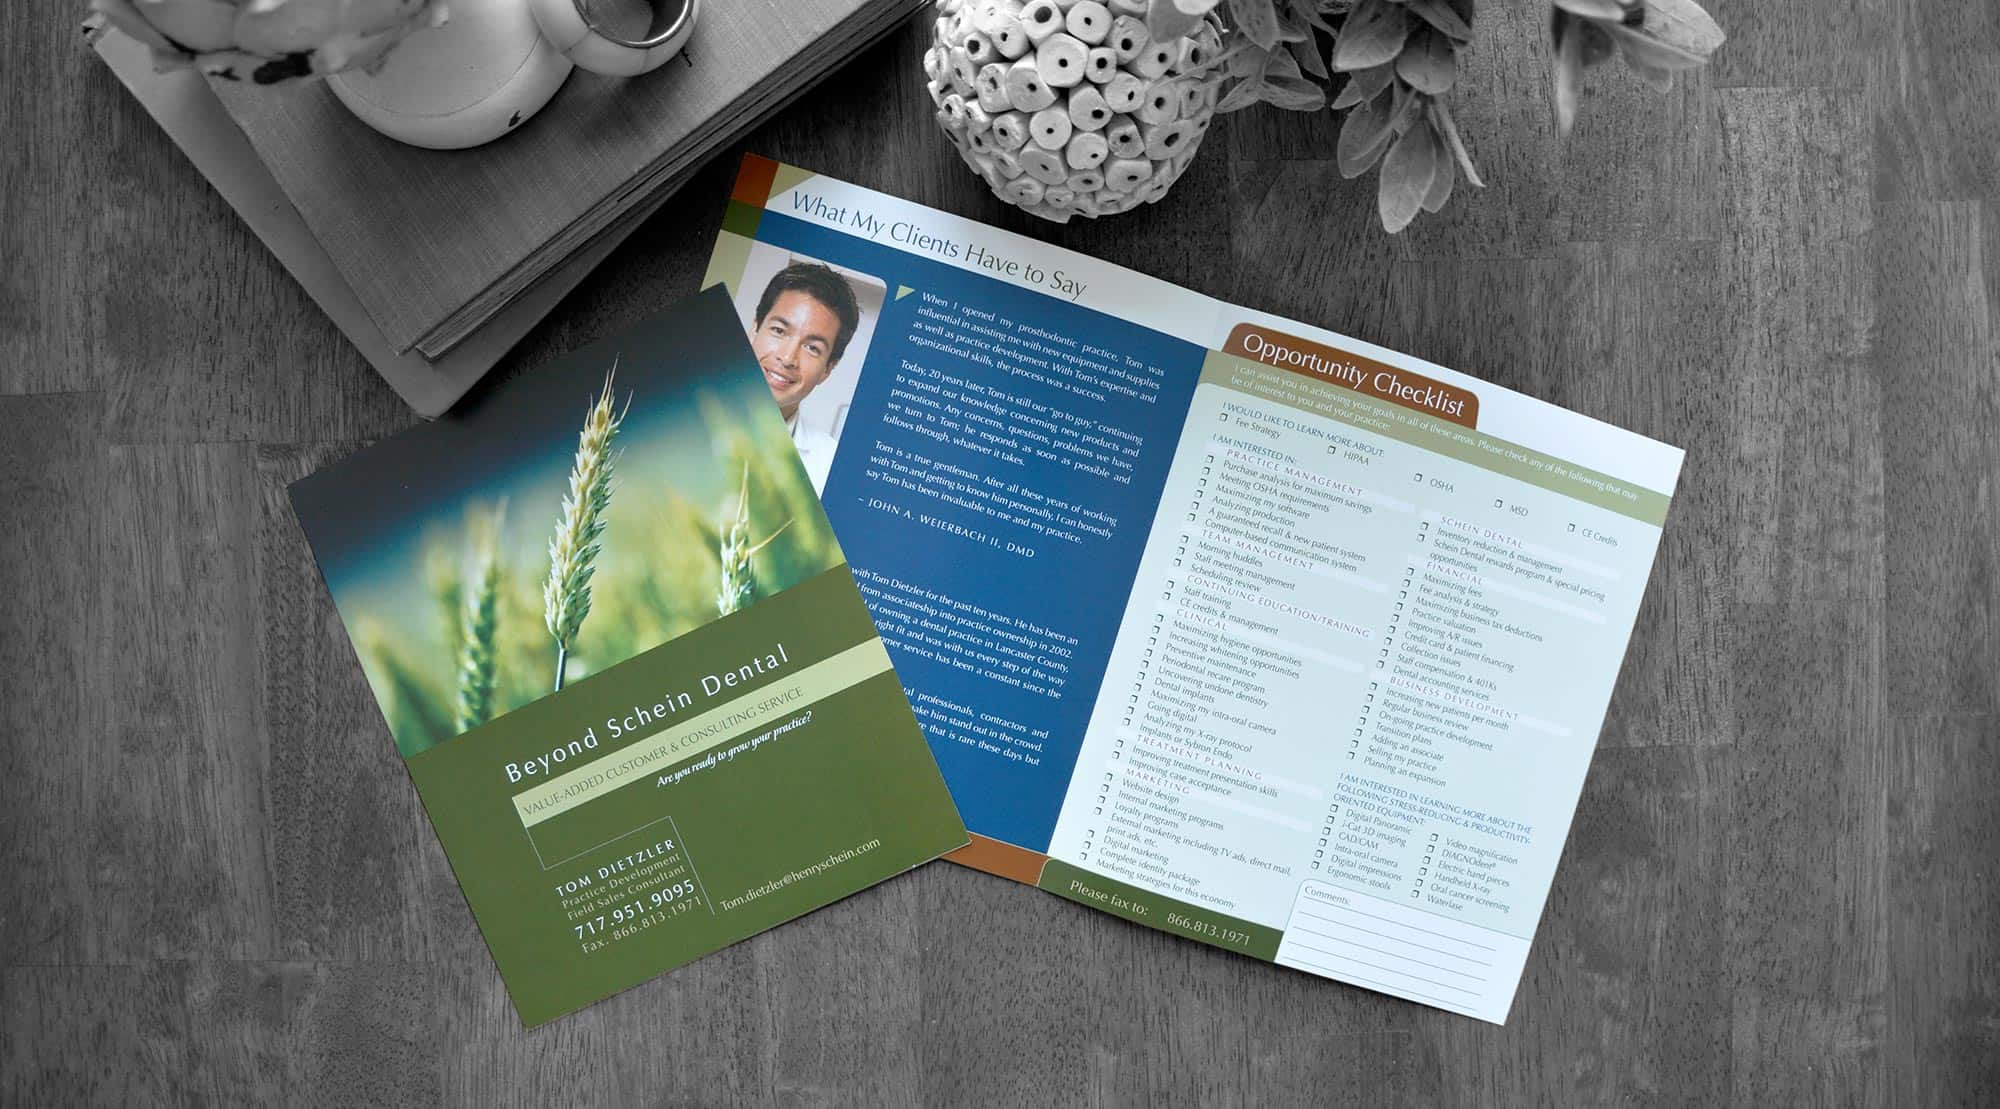 dental brochures beyond schein